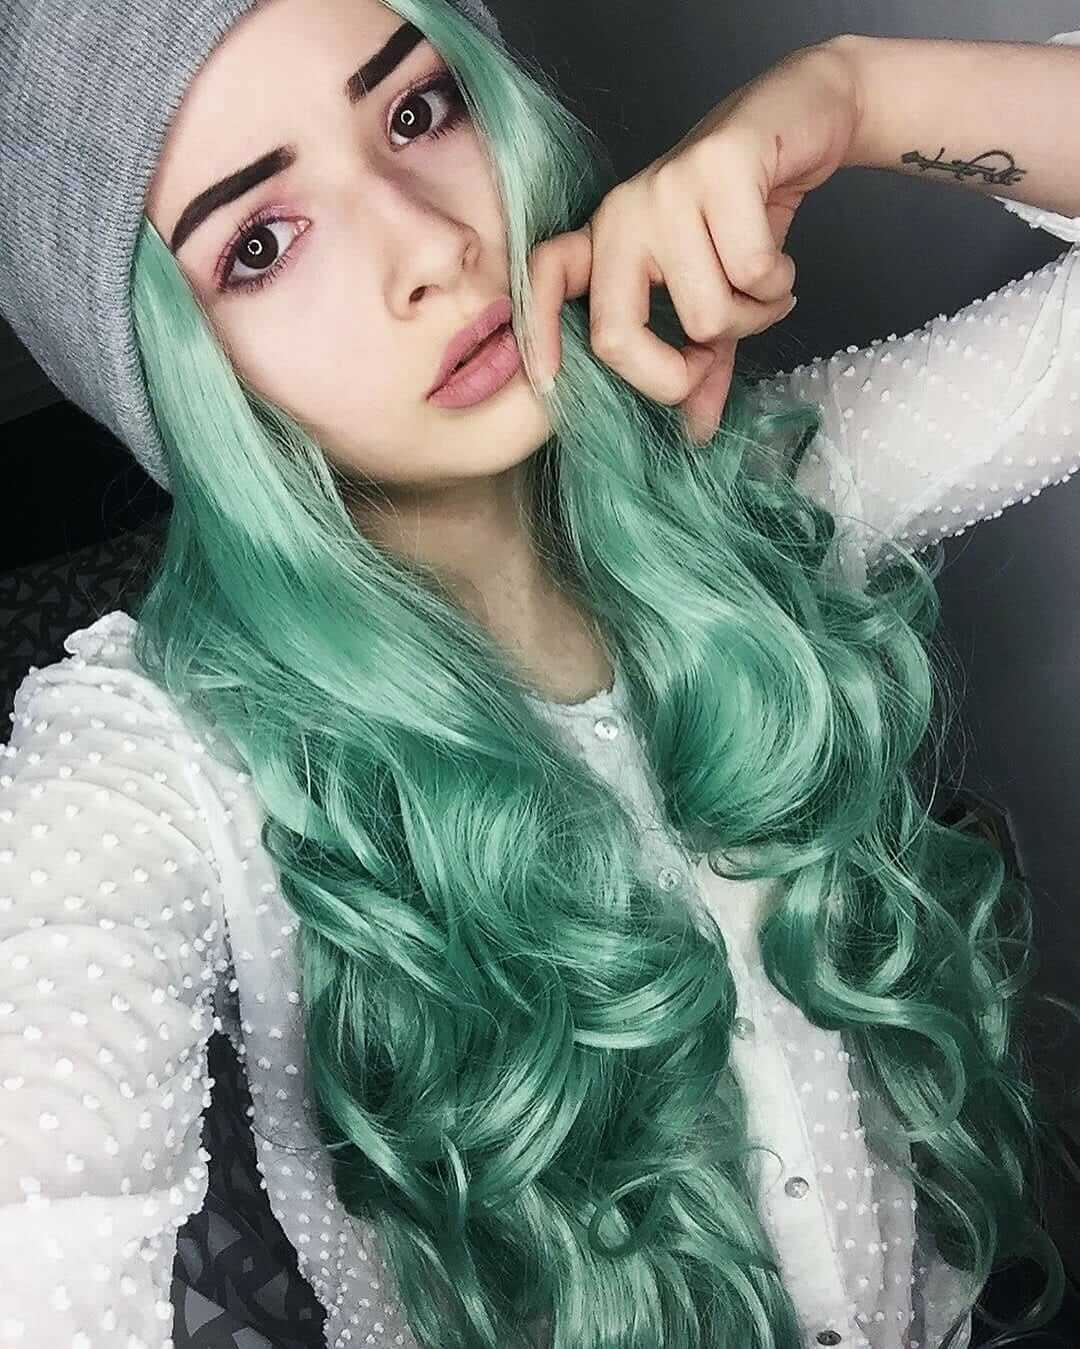 Pastel green hair dye on long wavy hairstyle by patricia.echeverria